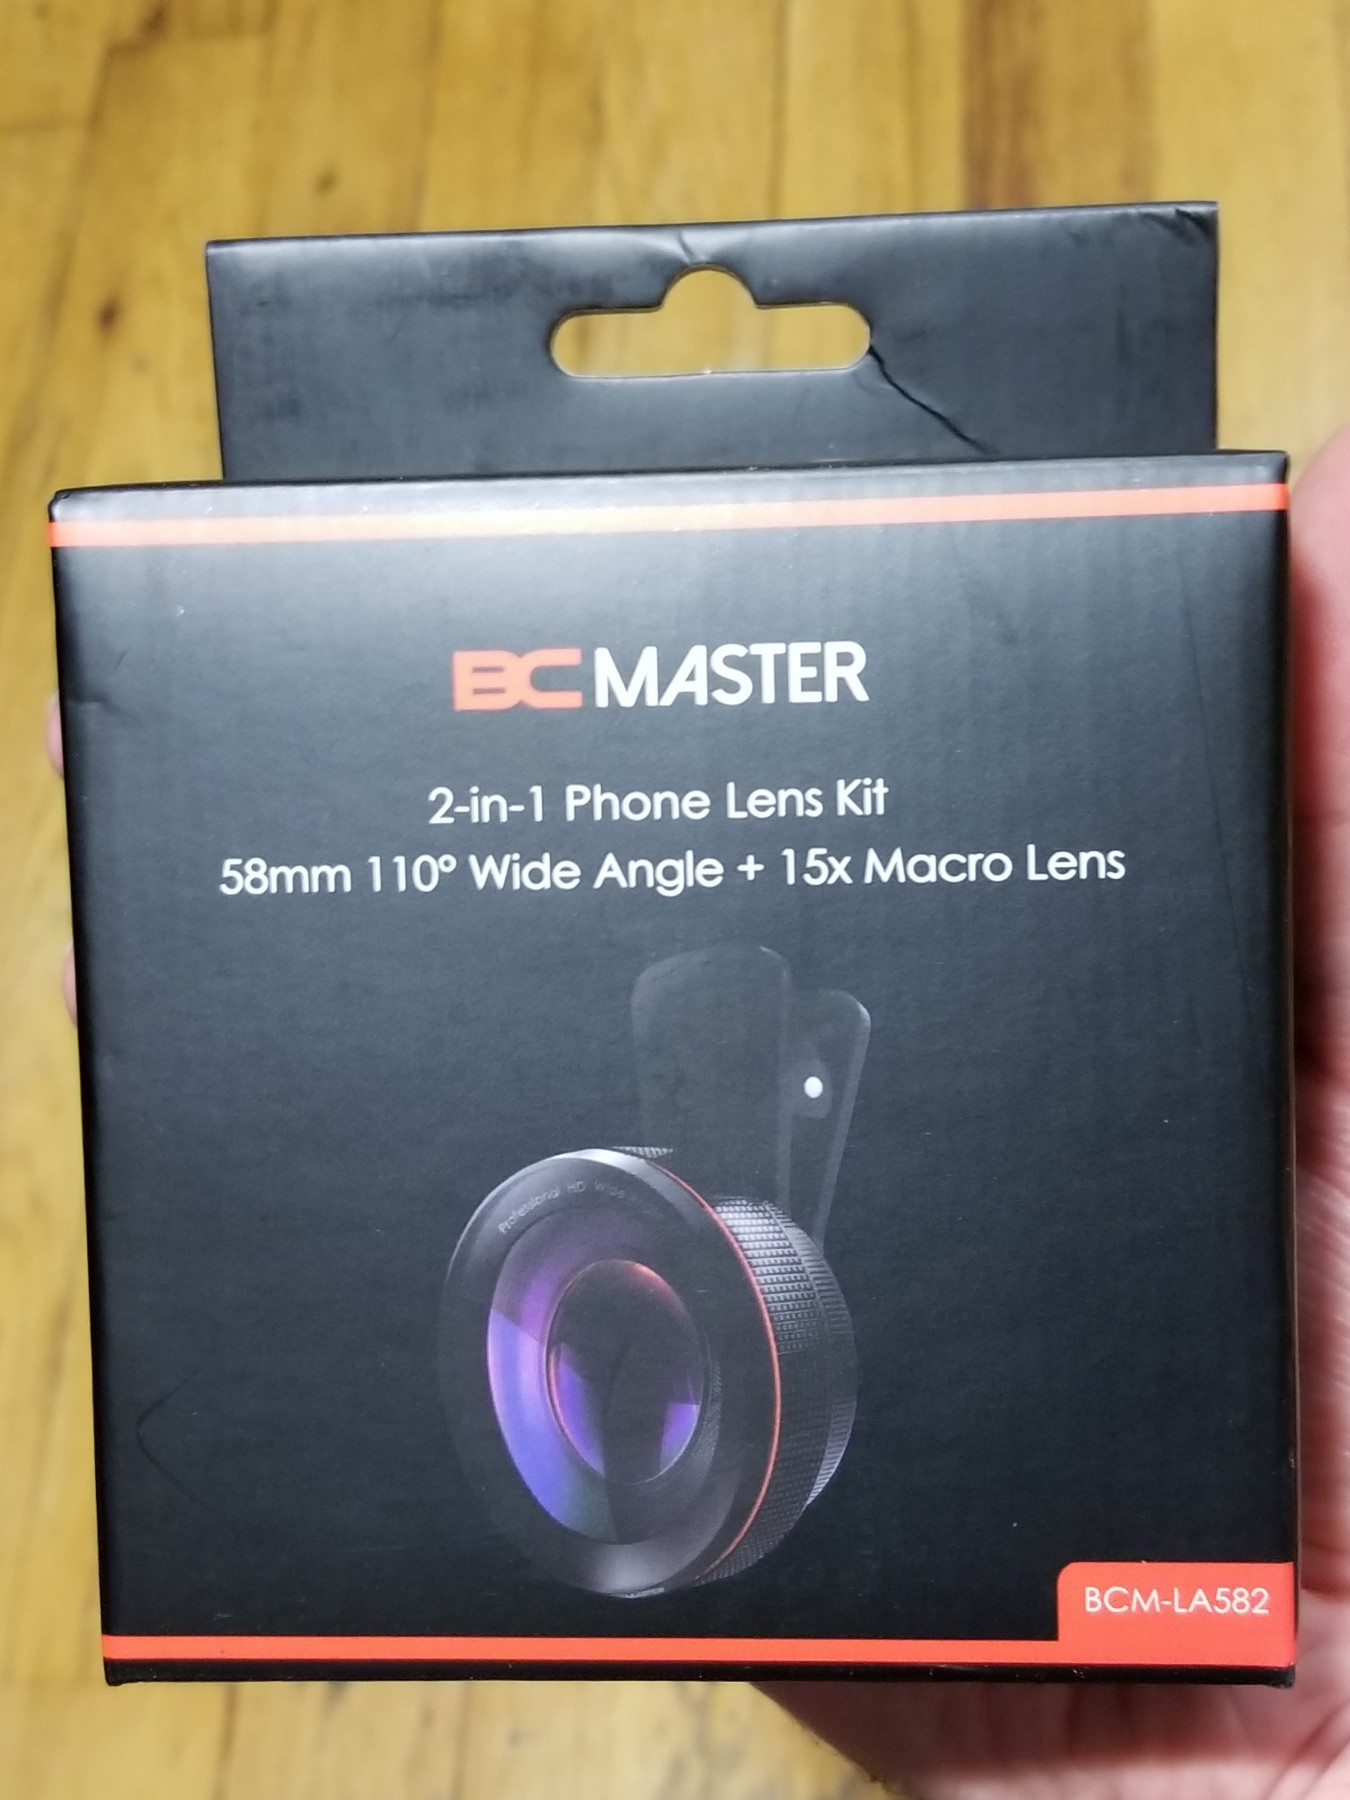 Overall, a good camera lens. Both wide angle and macro works great and feels very solid and not cheap.